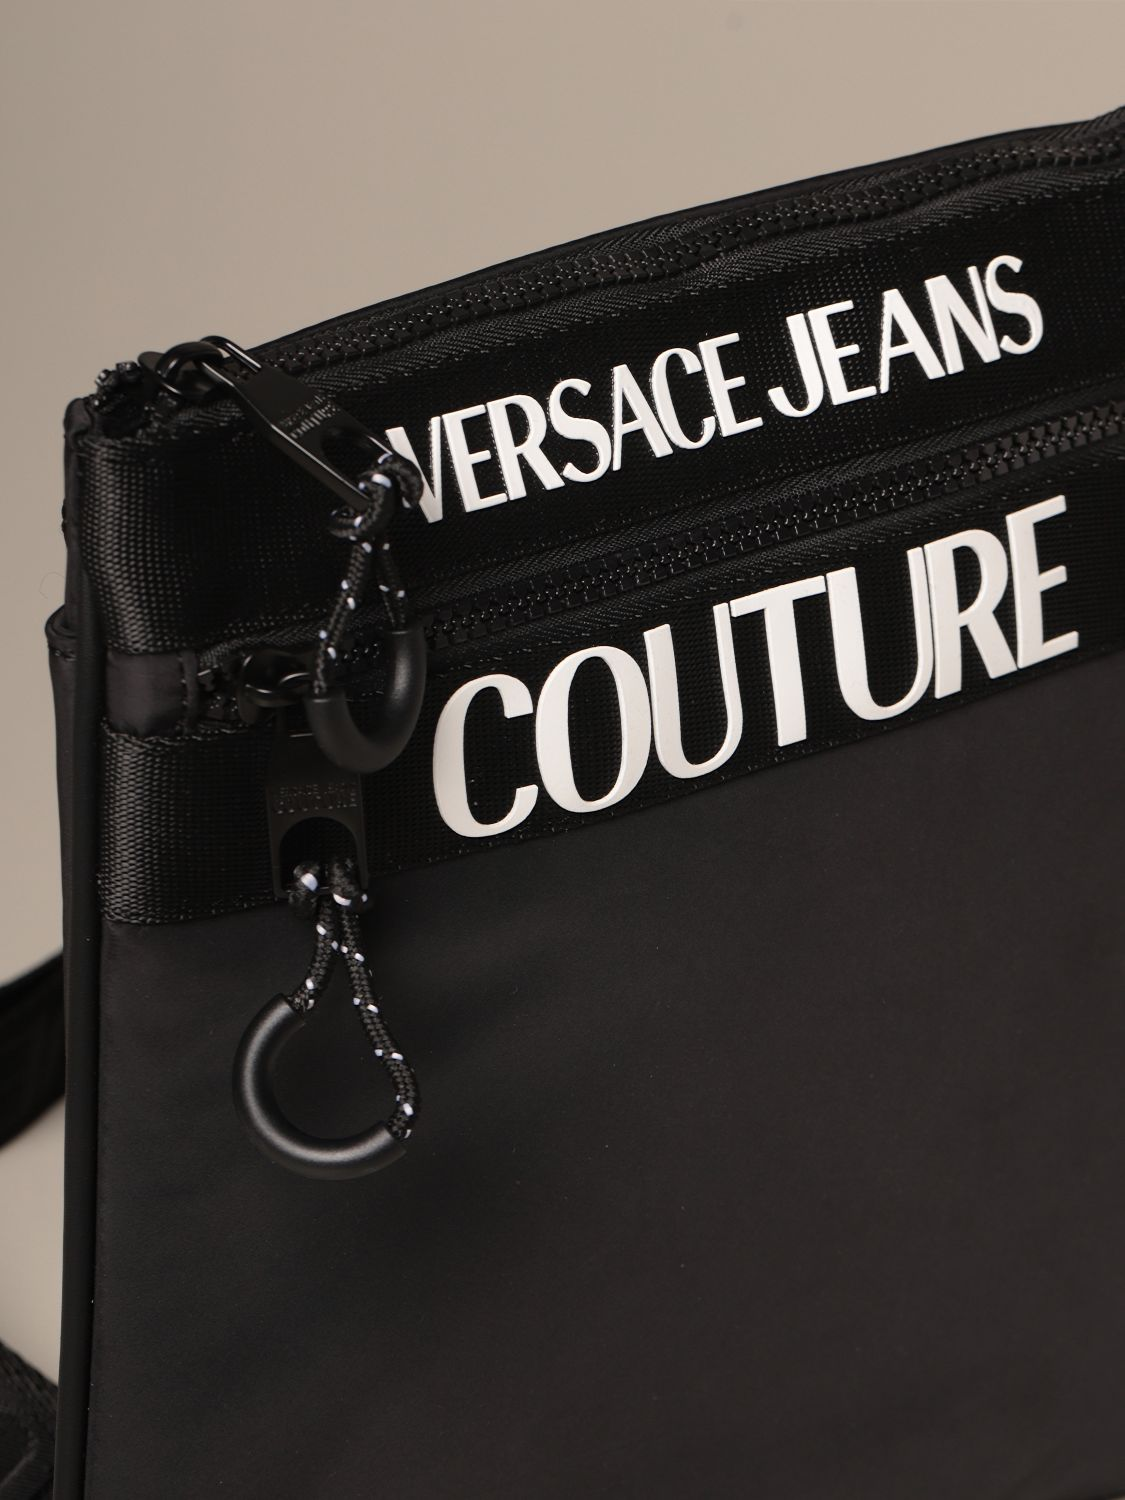 Shoulder bag Versace Jeans Couture: Bags men Versace Jeans Couture black 3